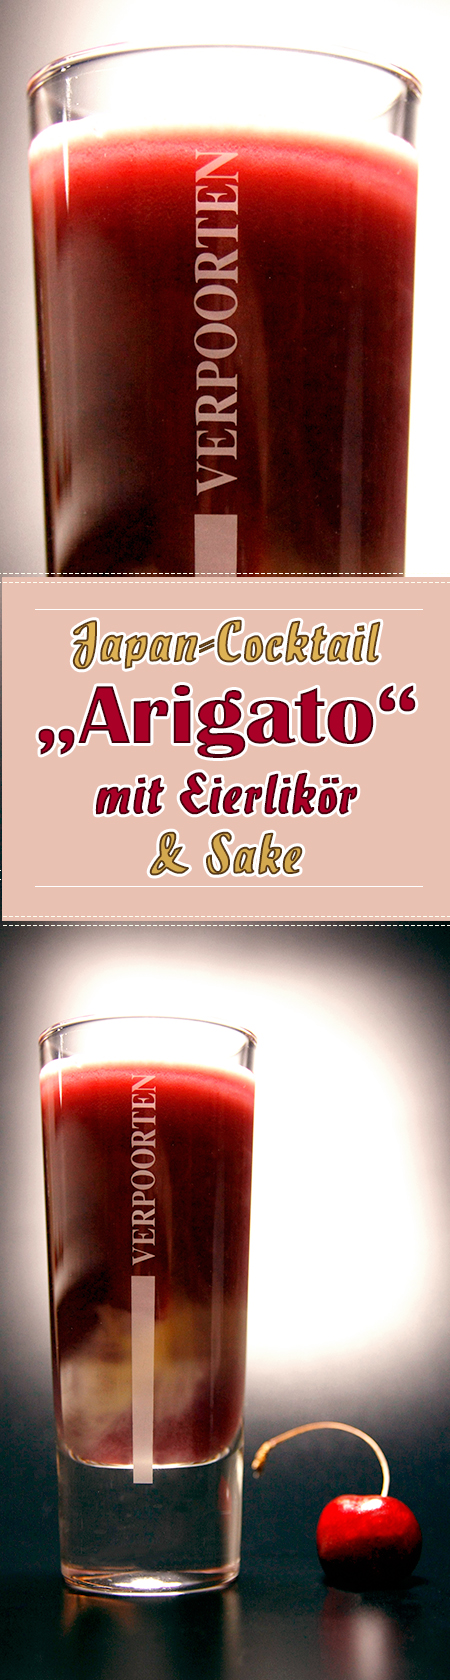 VERPOORTEN Länder-Cocktail Japan 'Arigato'